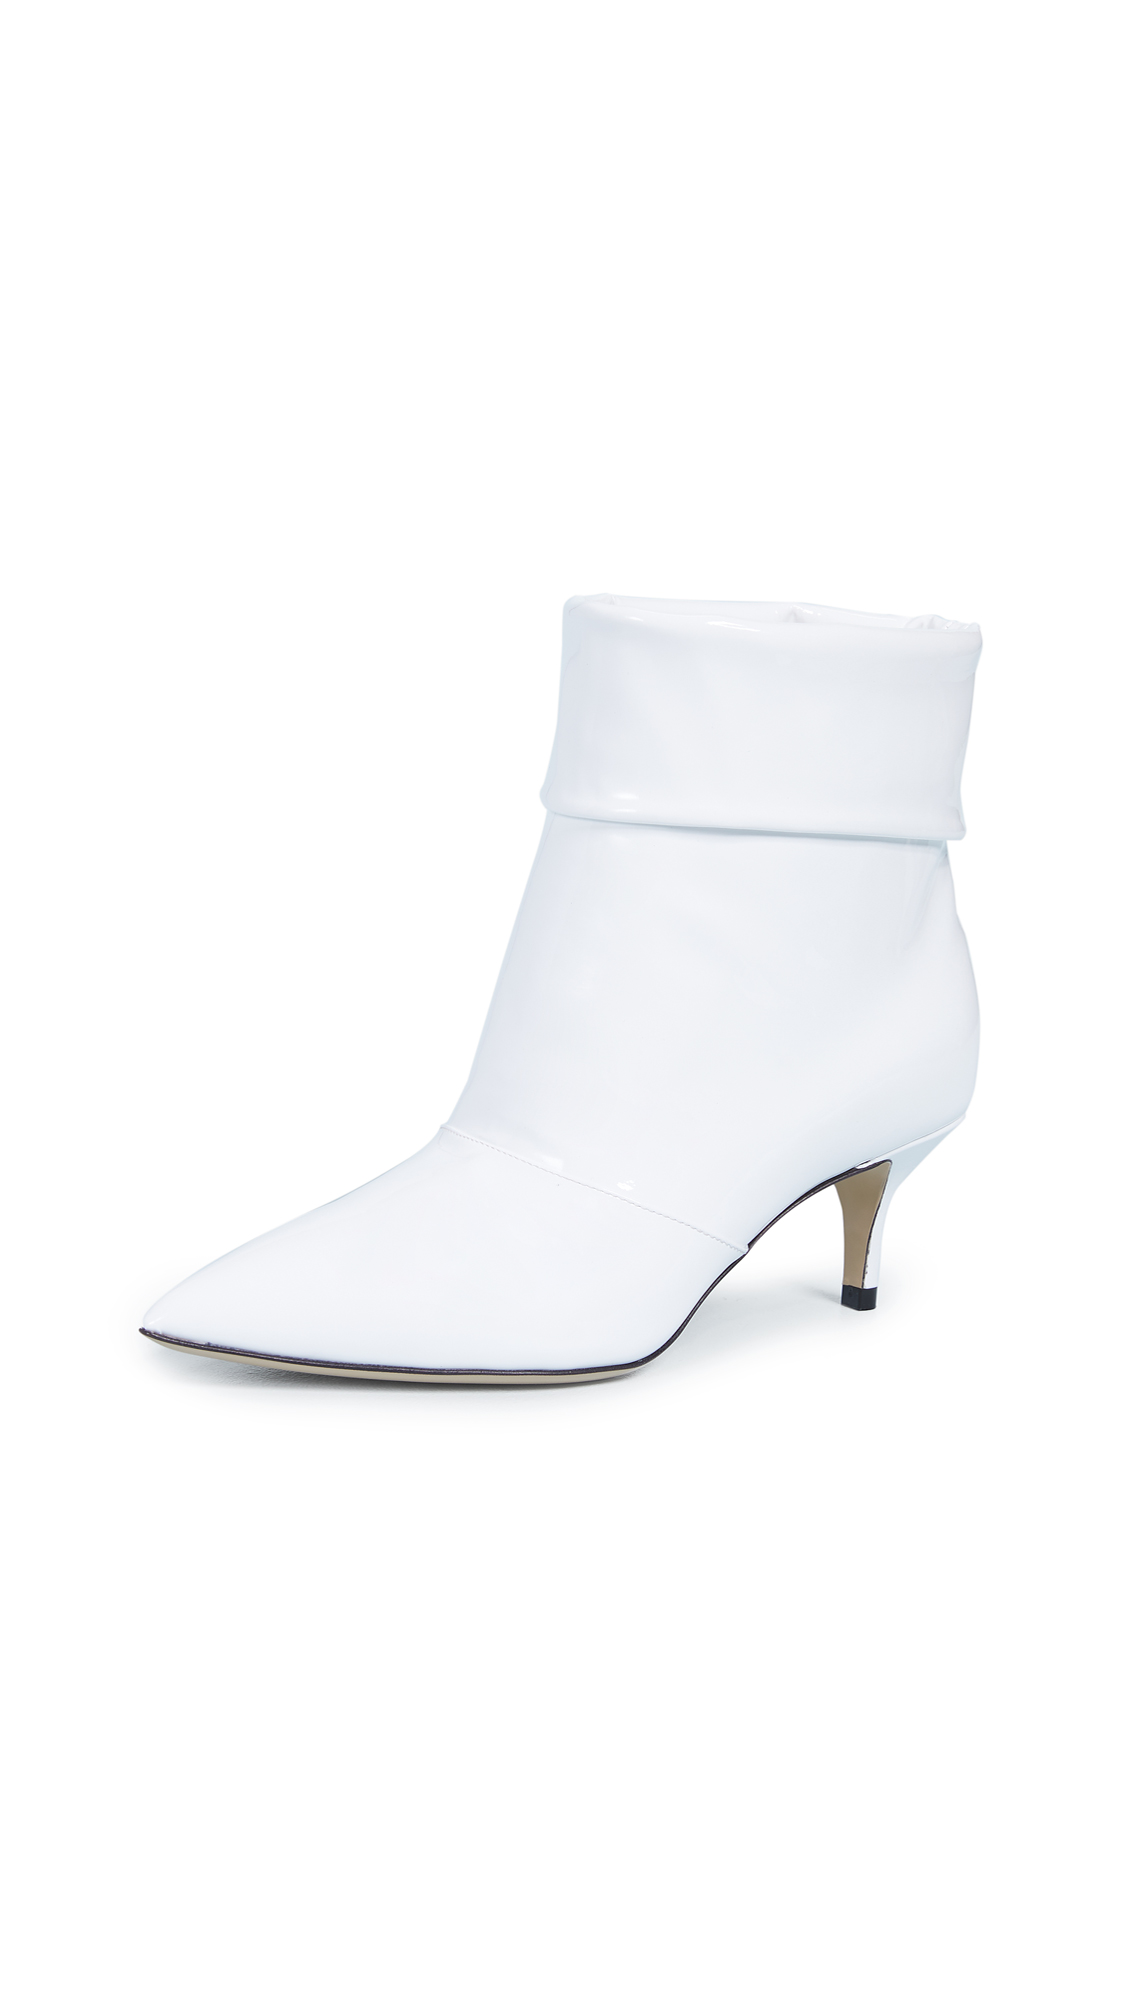 Paul Andrew Banner 55 Booties - White